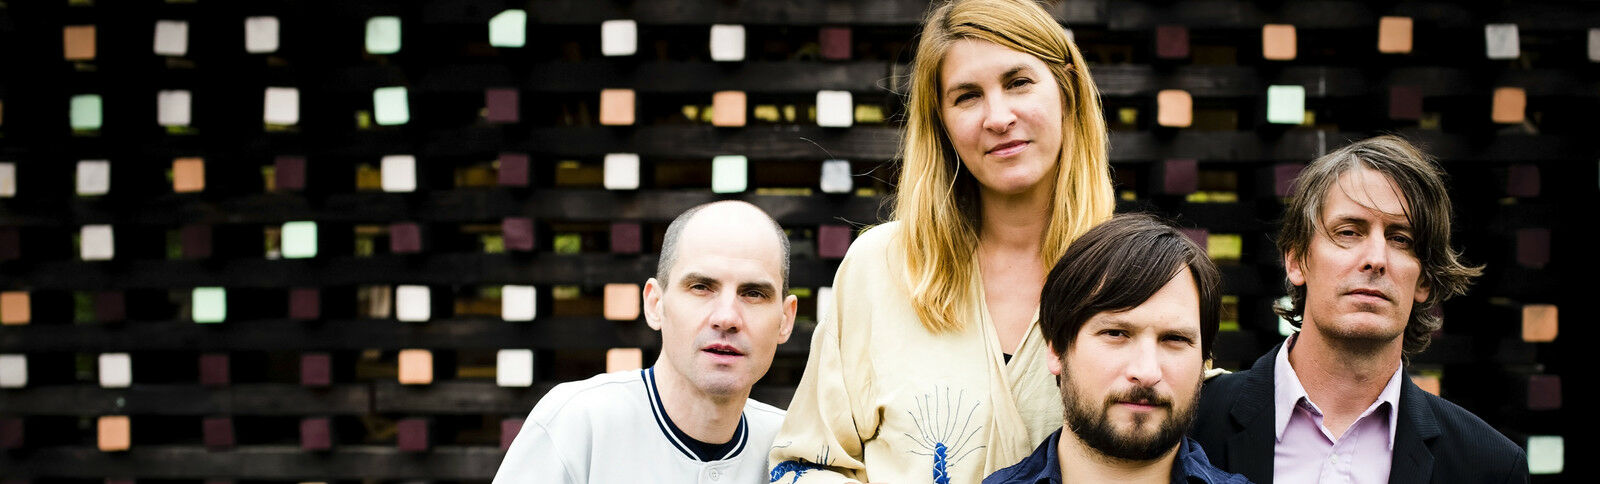 Stephen Malkmus and the Jicks Tickets (18+ Event)